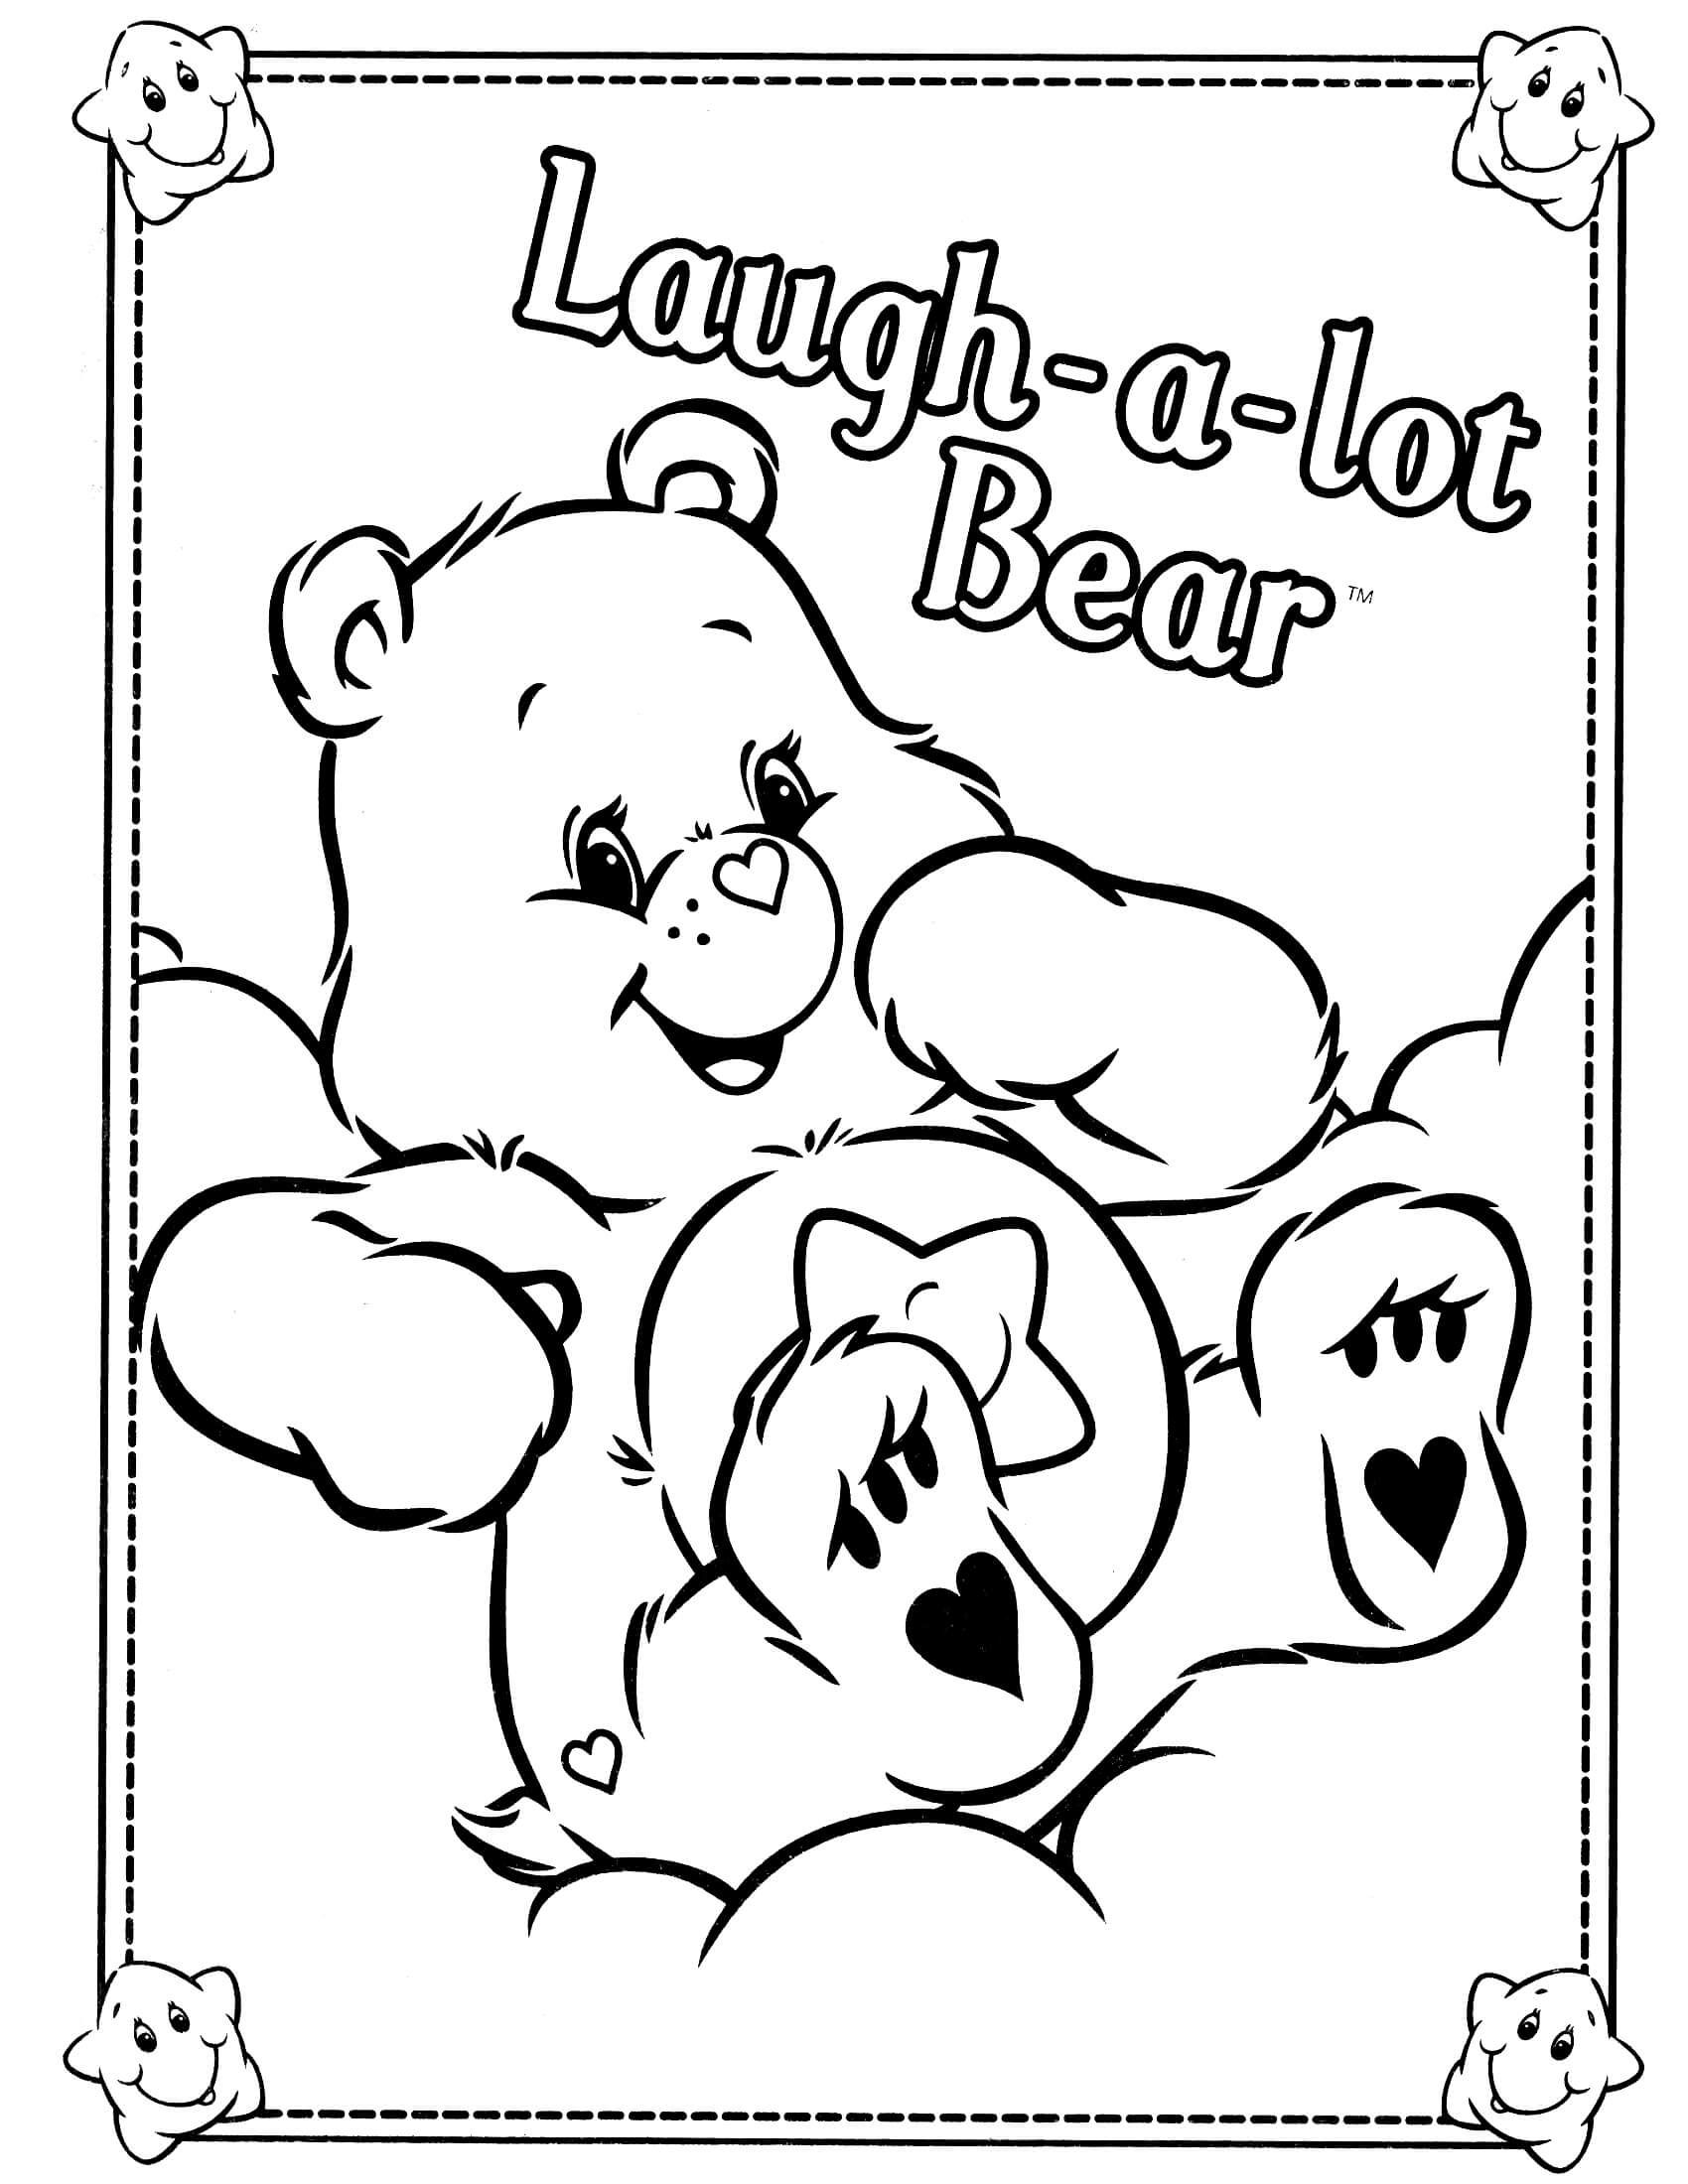 Care Bears Coloring Page Bear Coloring Pages Cartoon Coloring